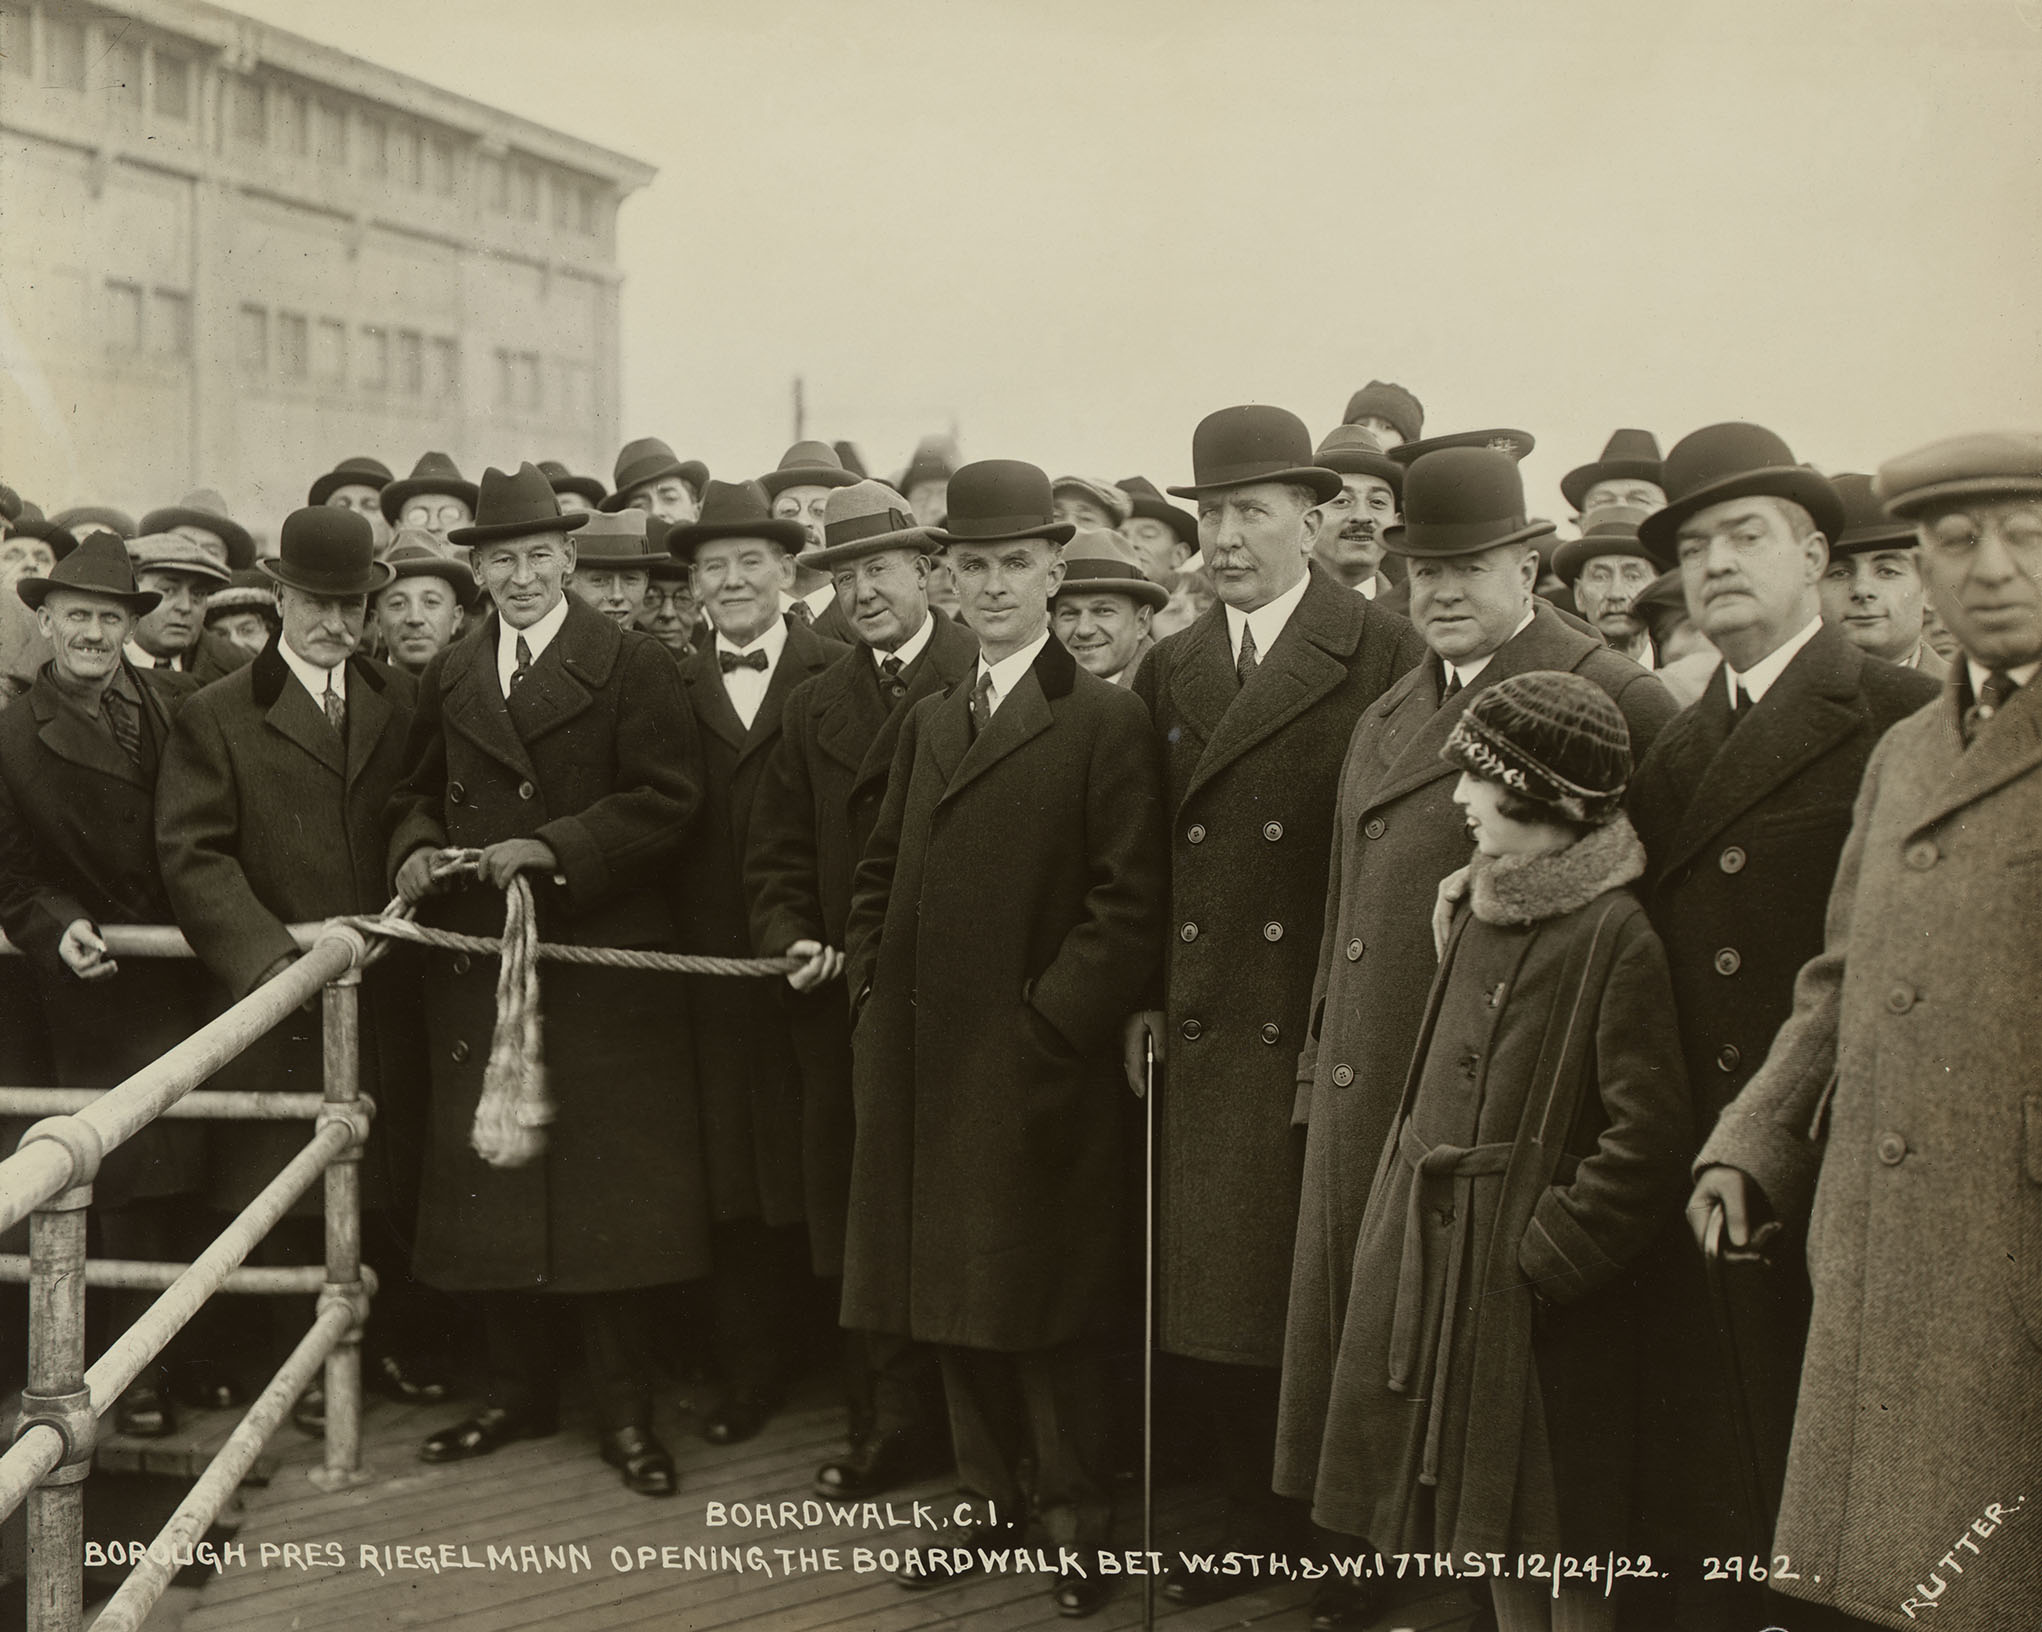 Boardwalk Coney Island, Borough President Riegelmann opening the Boardwalk, December 12, 1924. Photo by E.E. Rutter, Borough President Brooklyn Collection, NYC Municipal Archives.